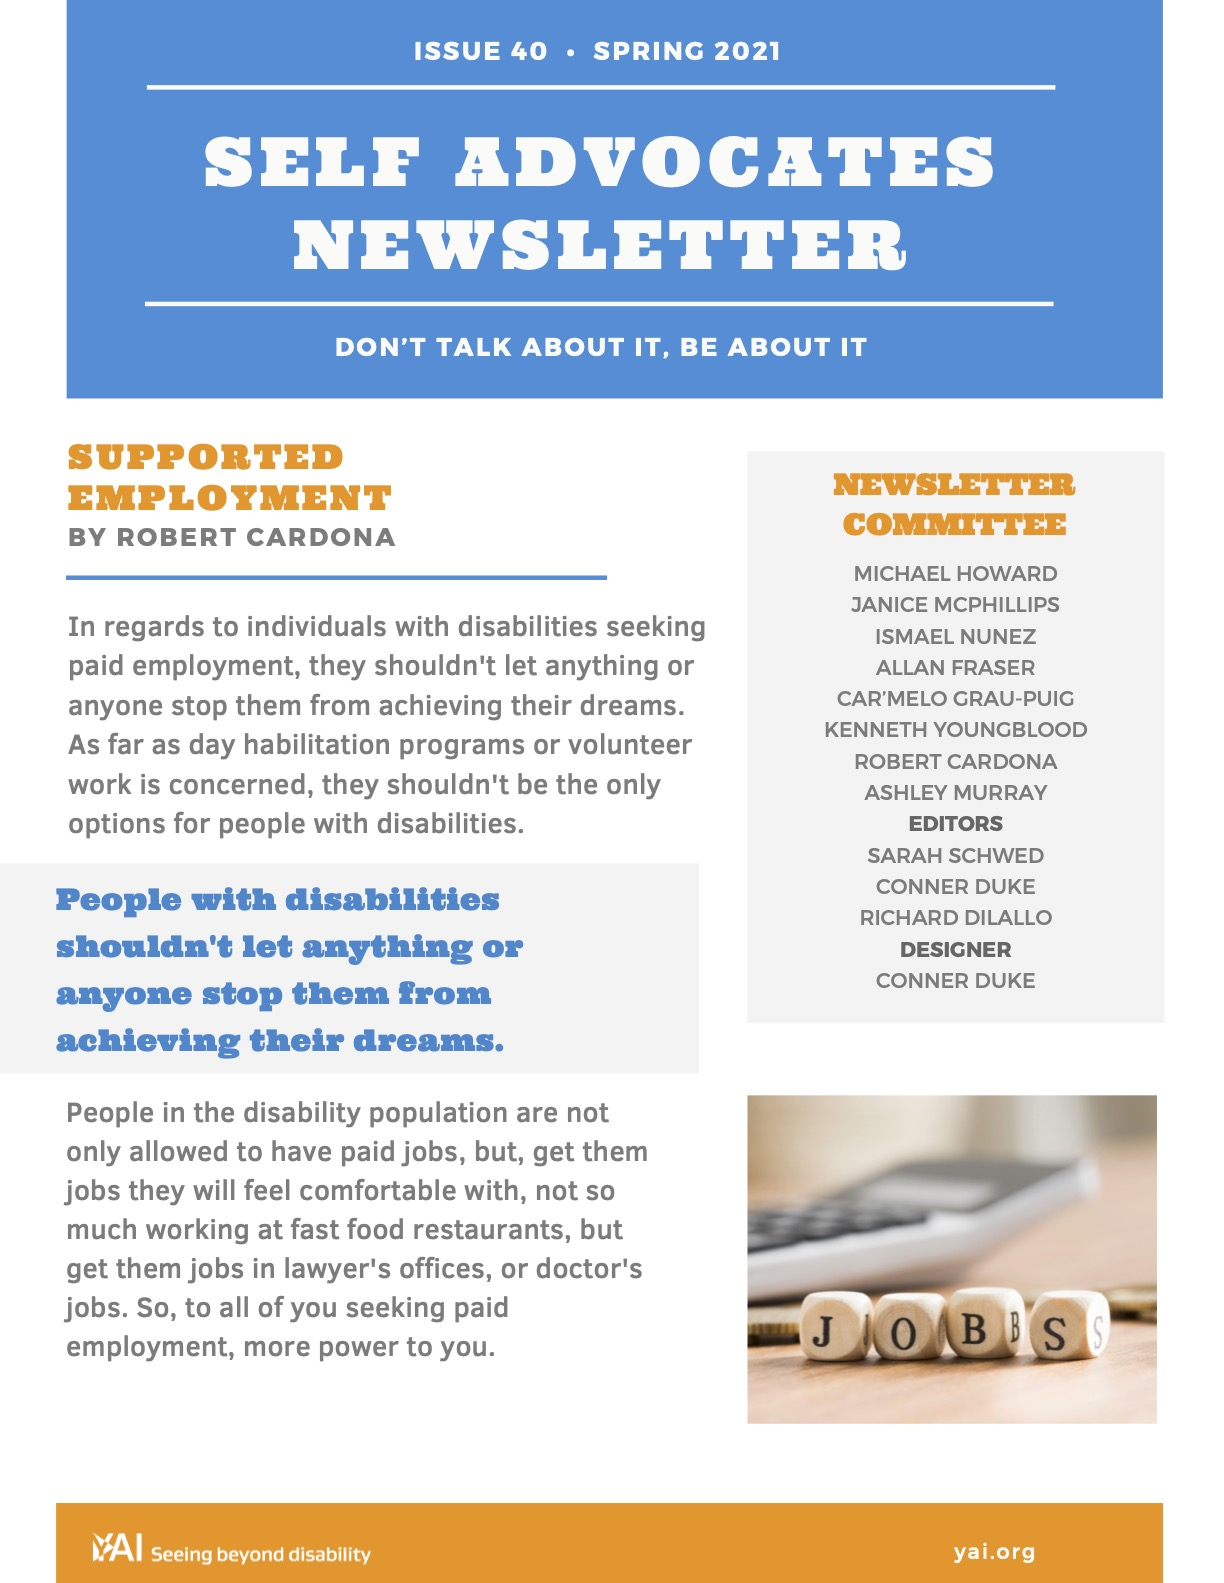 Front page of the Spring 2021 Self Advocates Newsletter